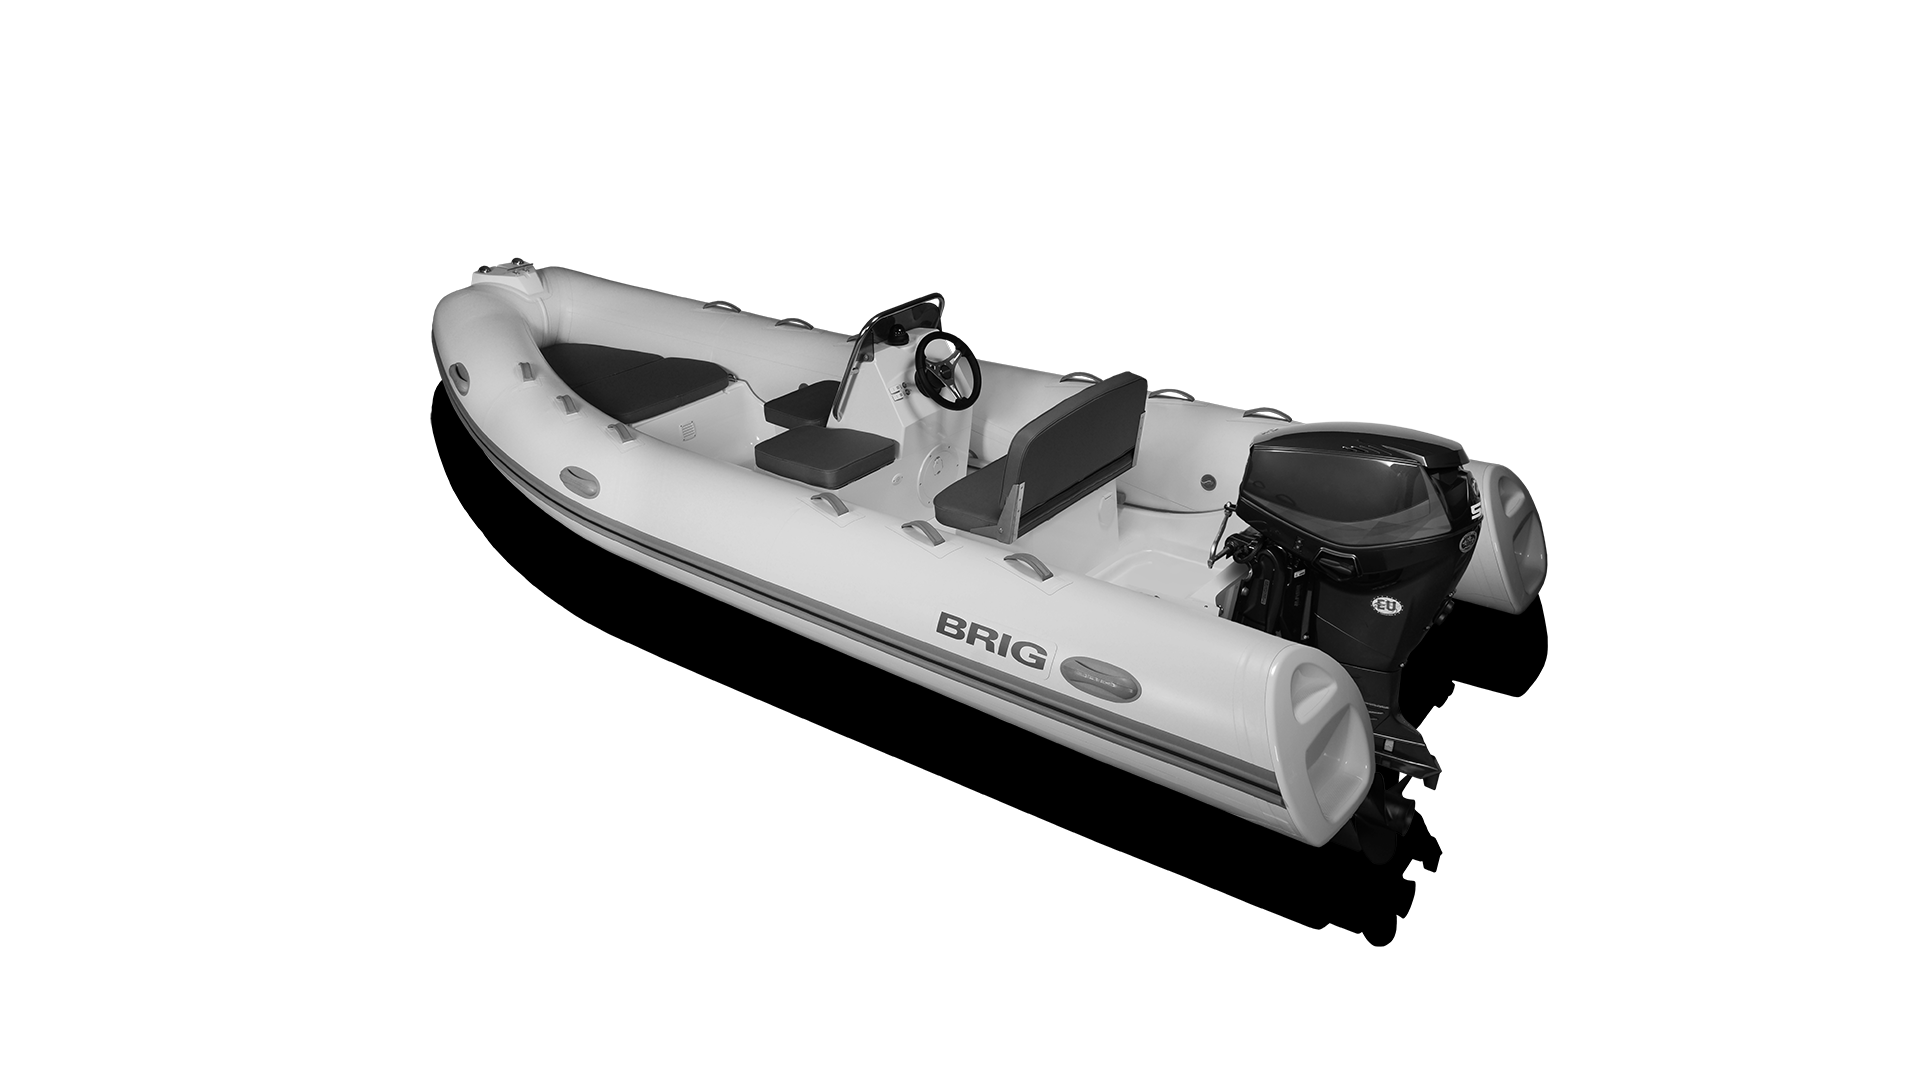 Falcon 480 Rigid Inflatable Boat